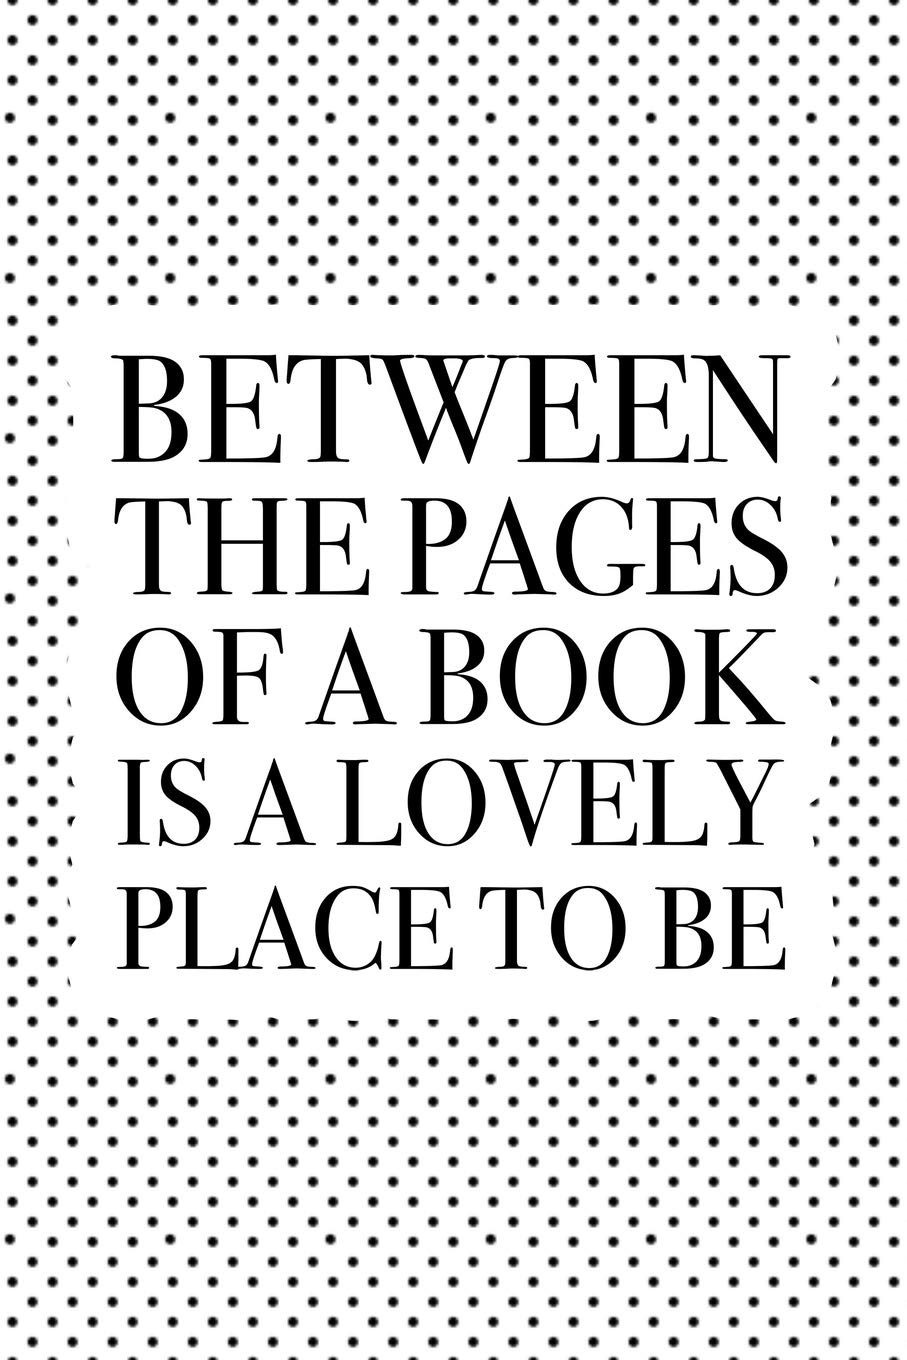 Between The Pages Of A Book Is A Lovely Place To Be: A 6×9 Inch Matte Softcover Journal Notebook With 120 Blank Lined Pages And A Book Loving Bibliophile Cover Slogan